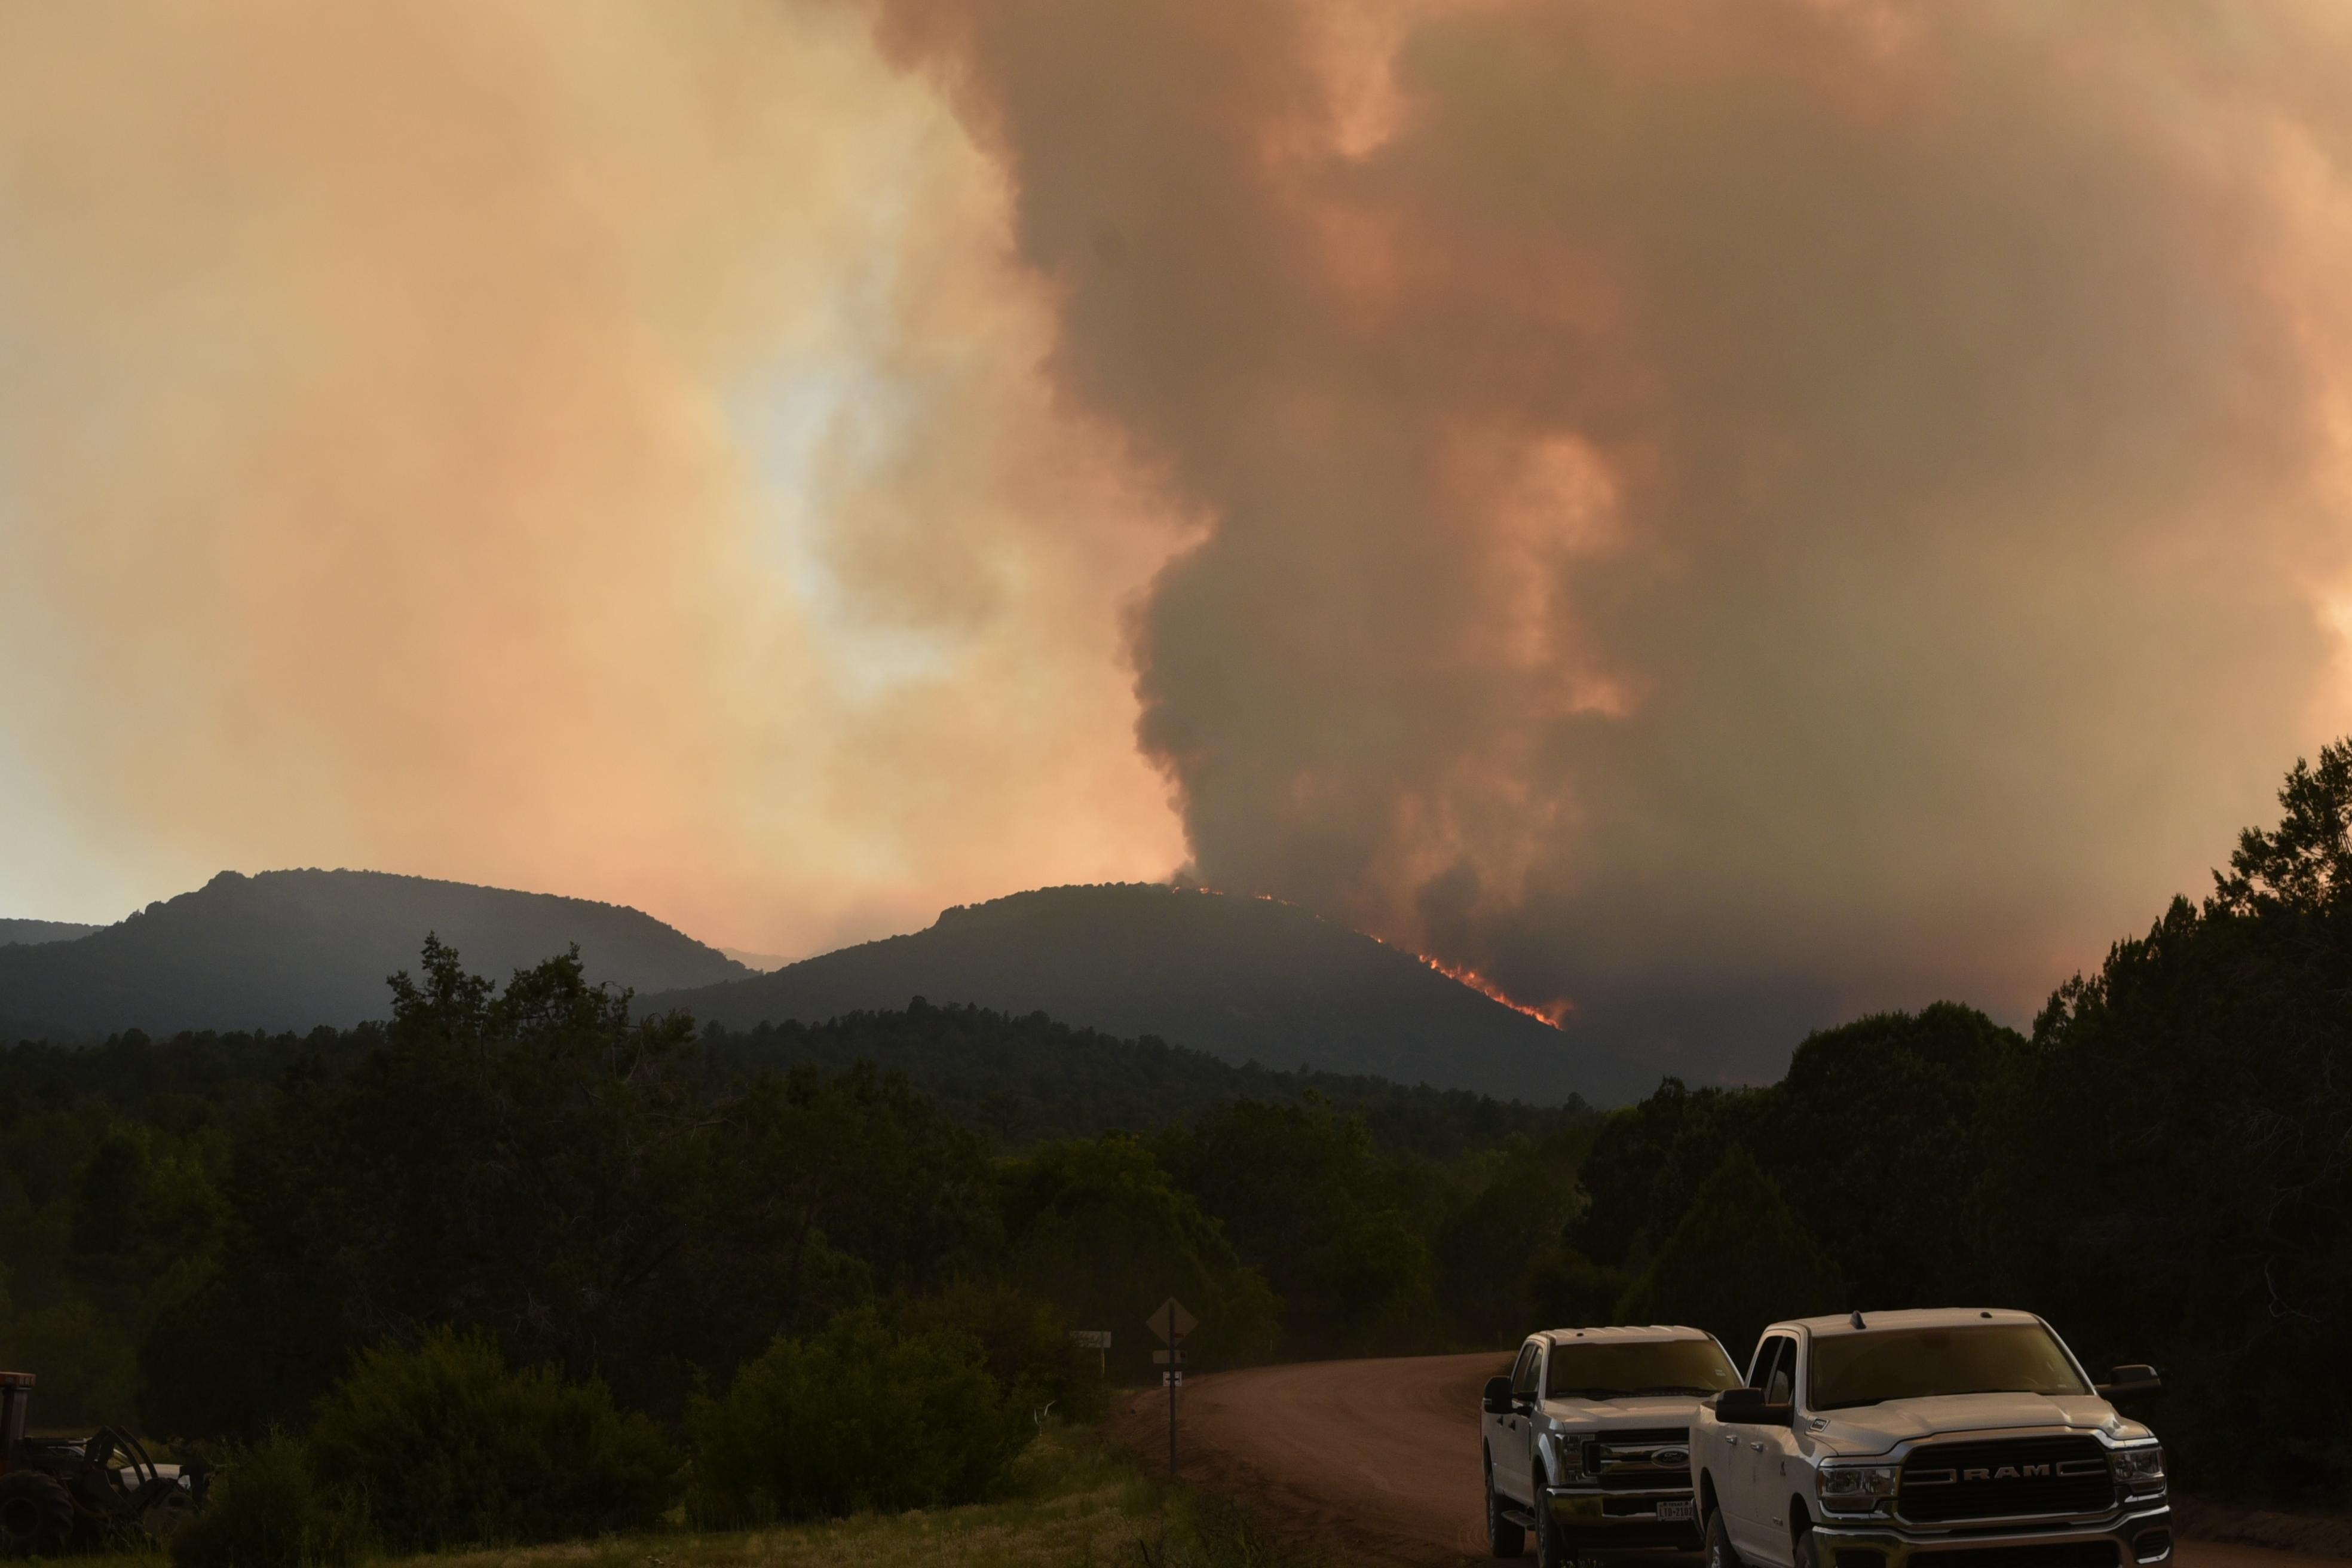 Sheridan Fire from Camp Wood Rd at FR 666